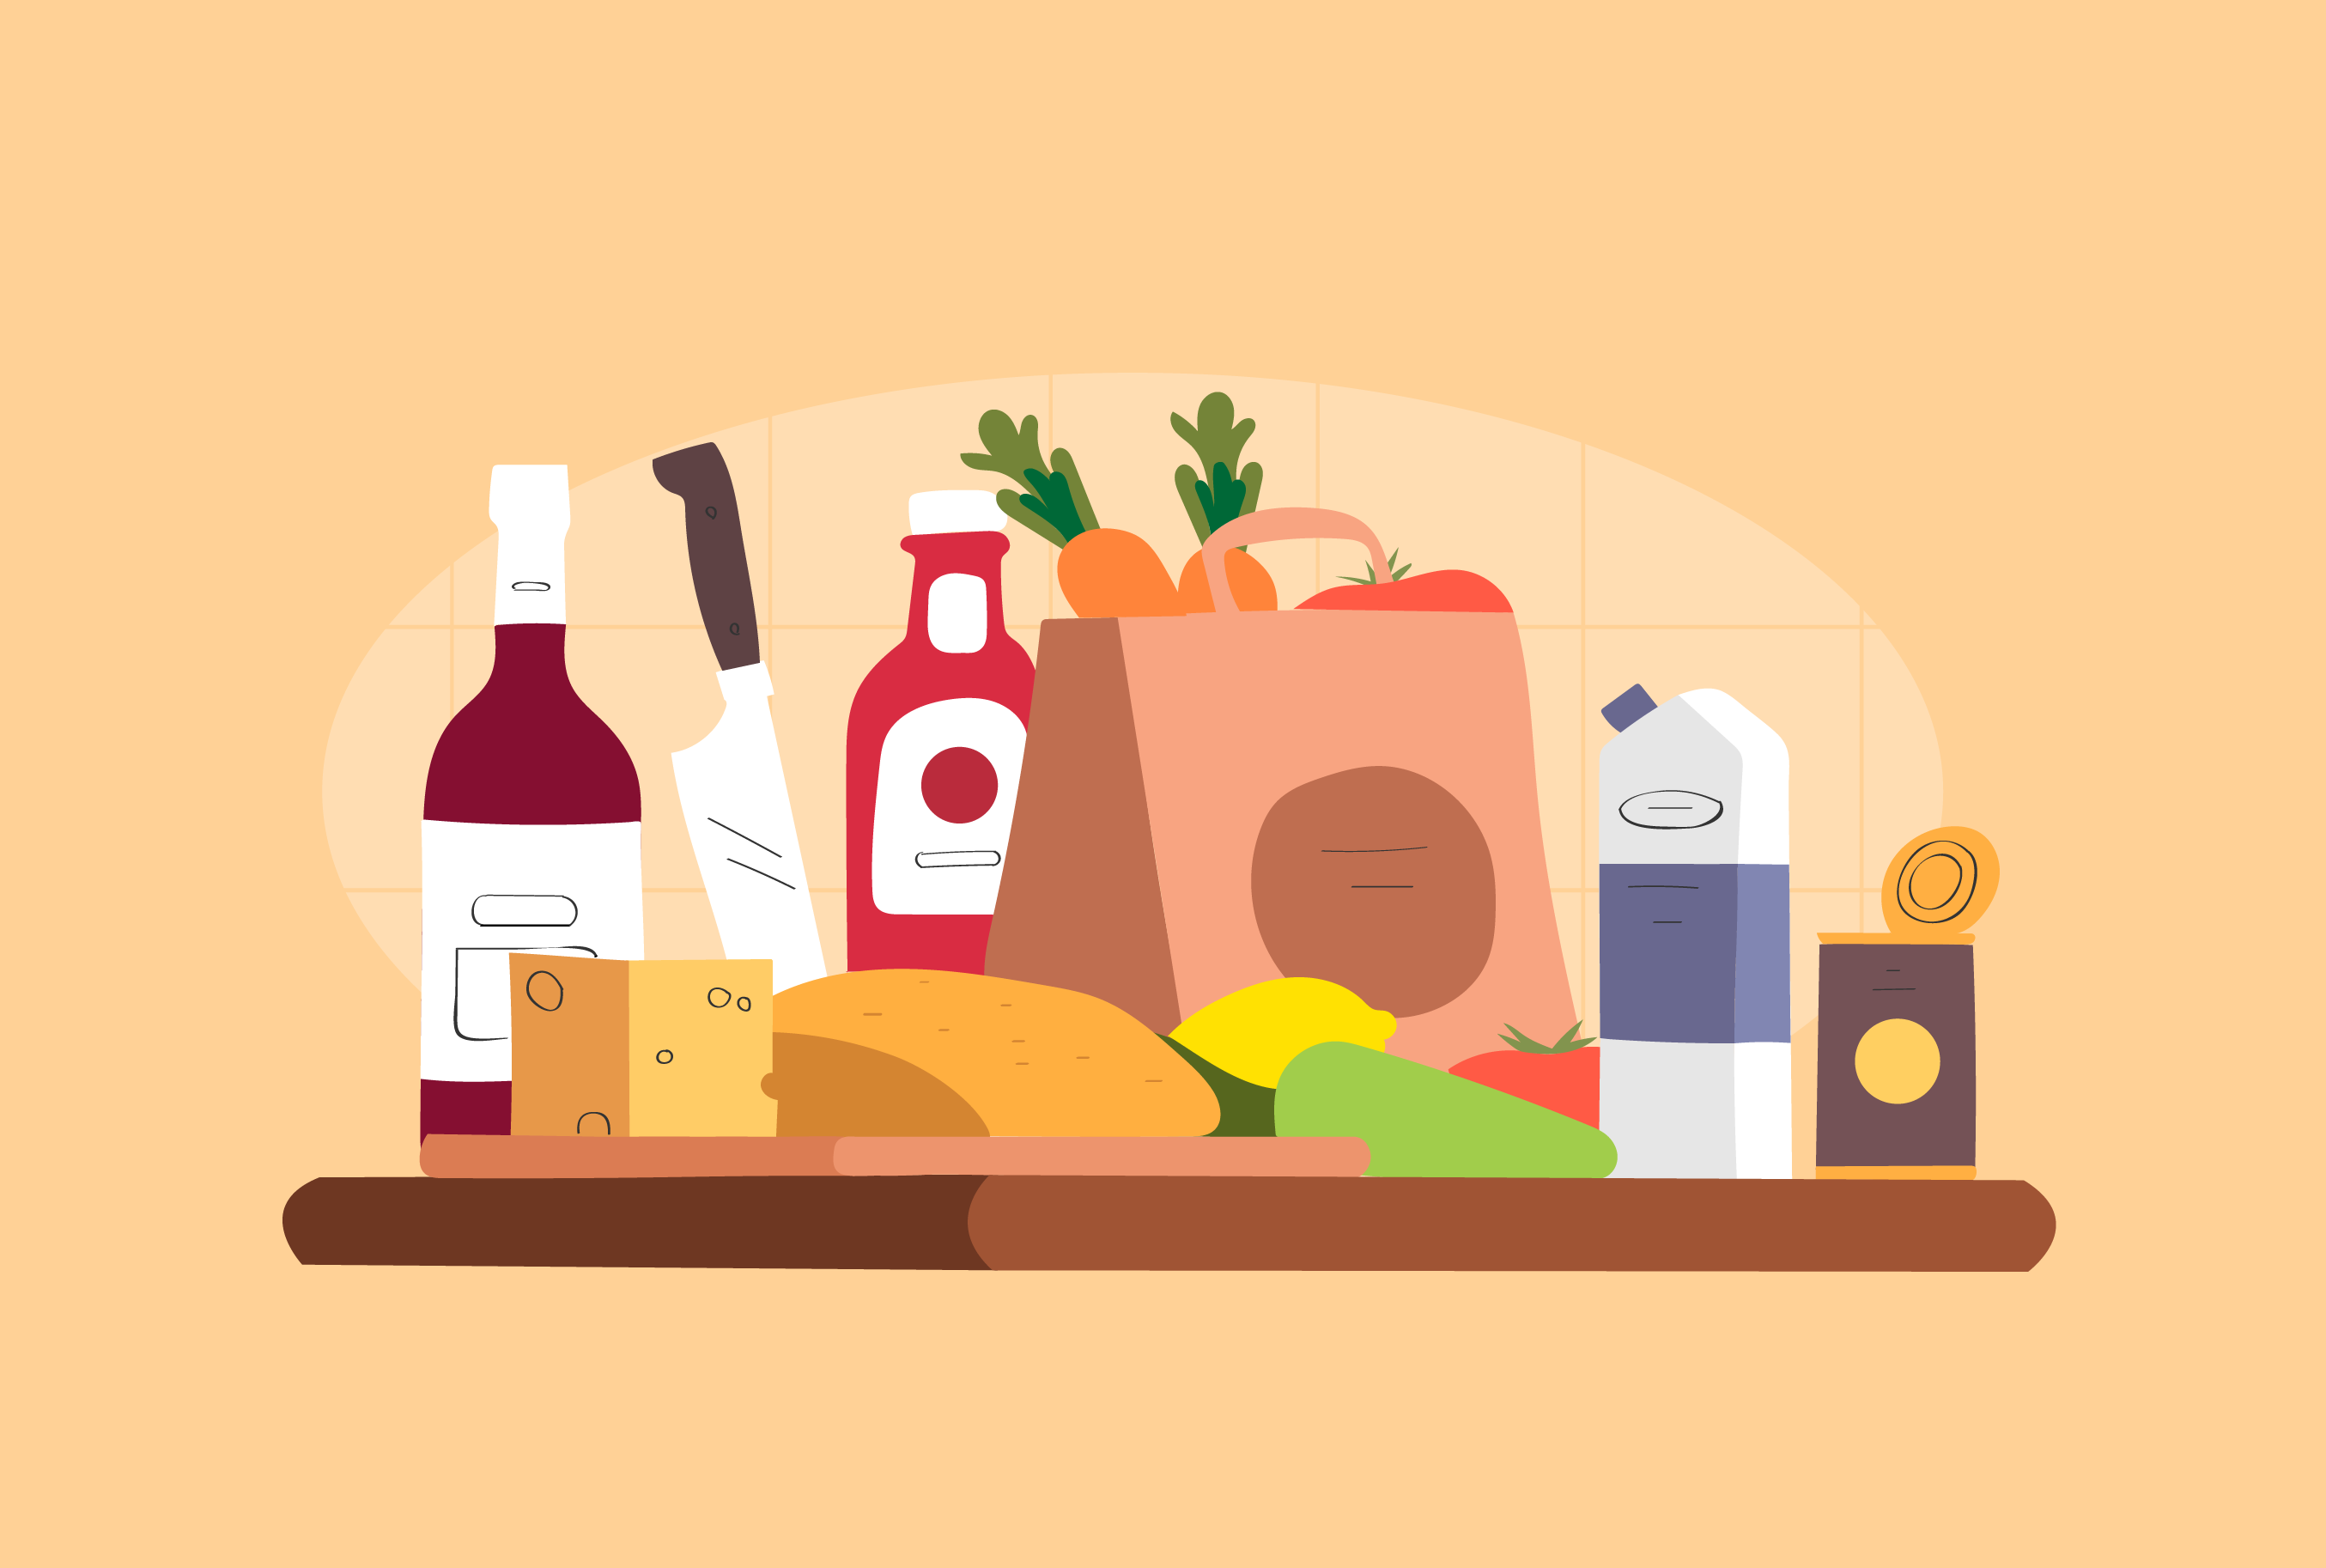 An image of food items.